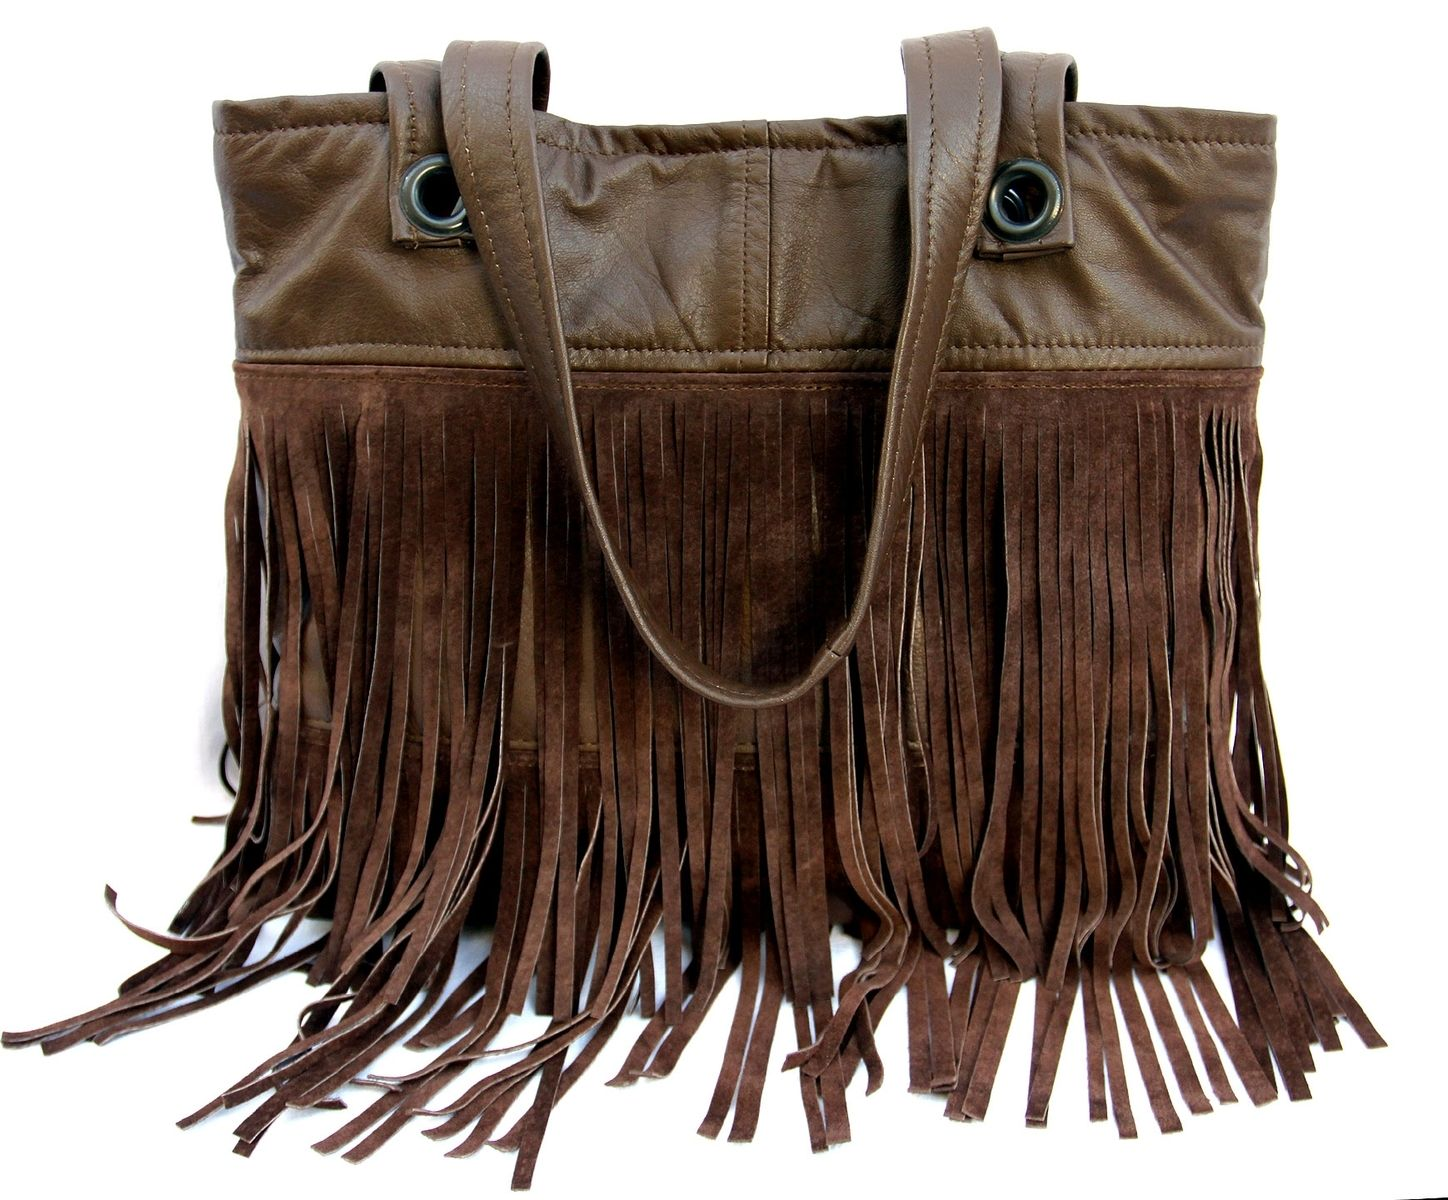 acb8ed44f4ad Custom Made Upcycled Leather Fringe Tote - Flapper Fringe Tote In Brown  Suede